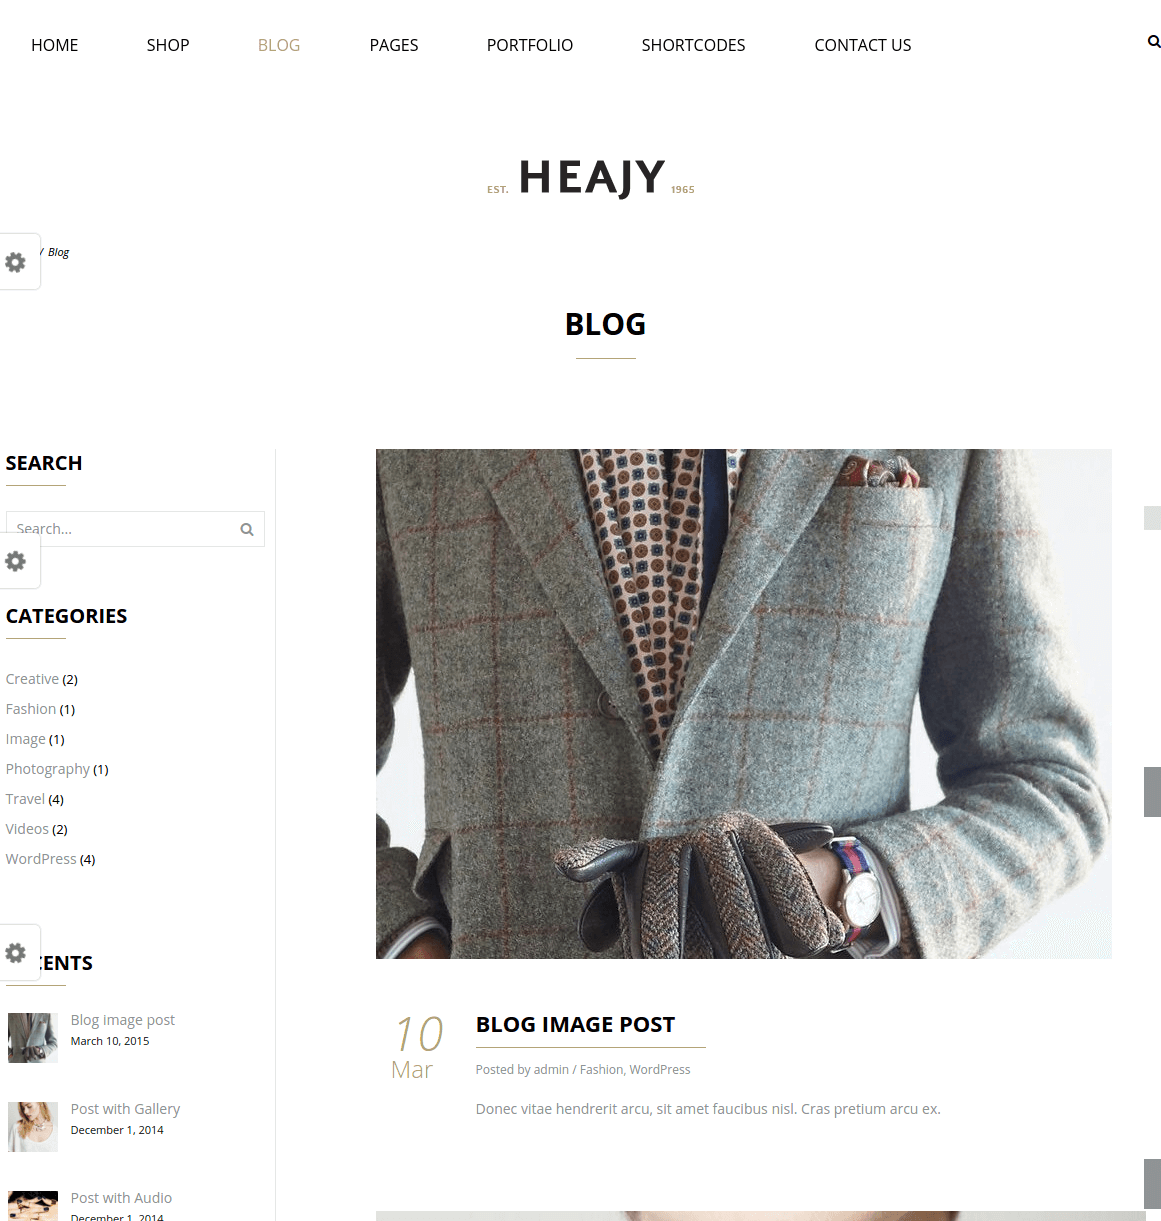 Blog page of Heajy